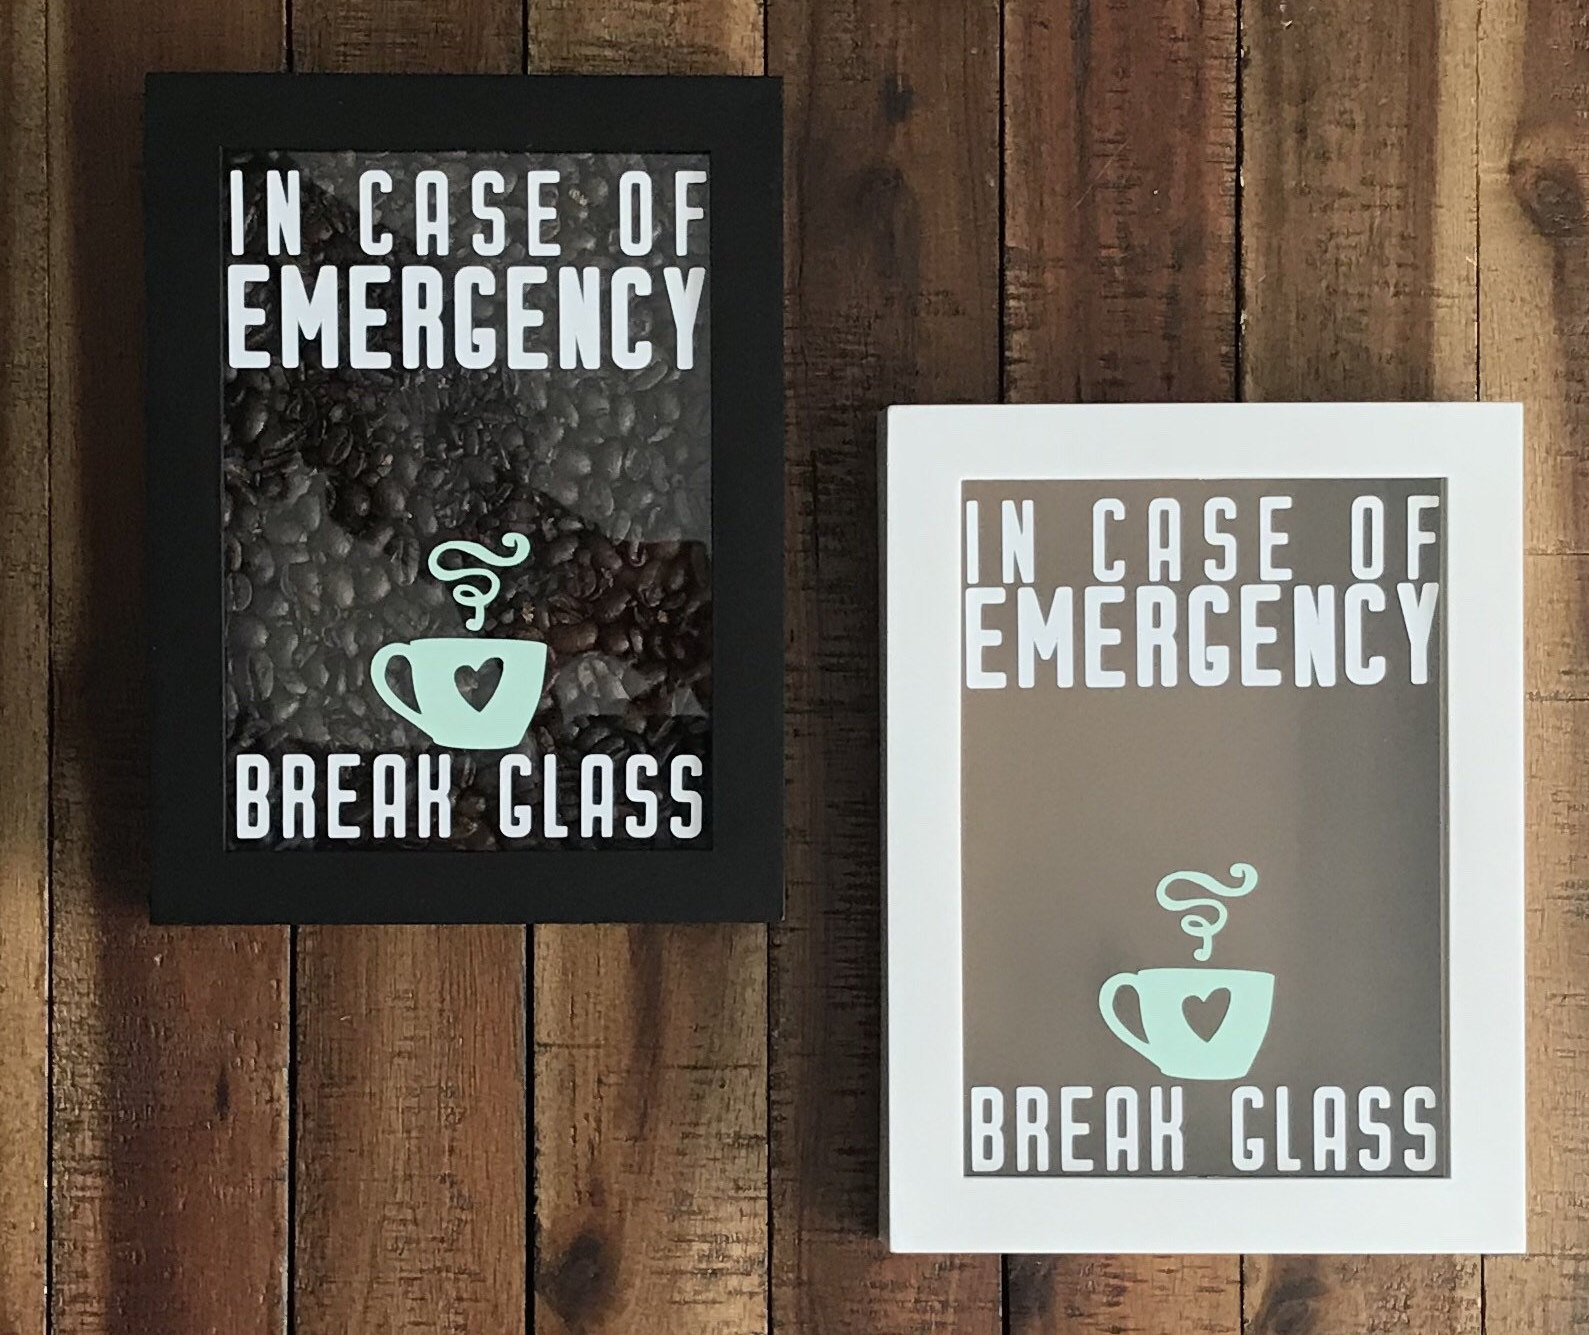 In Case Of Emergency Break Glass Filled with Coffee Beans